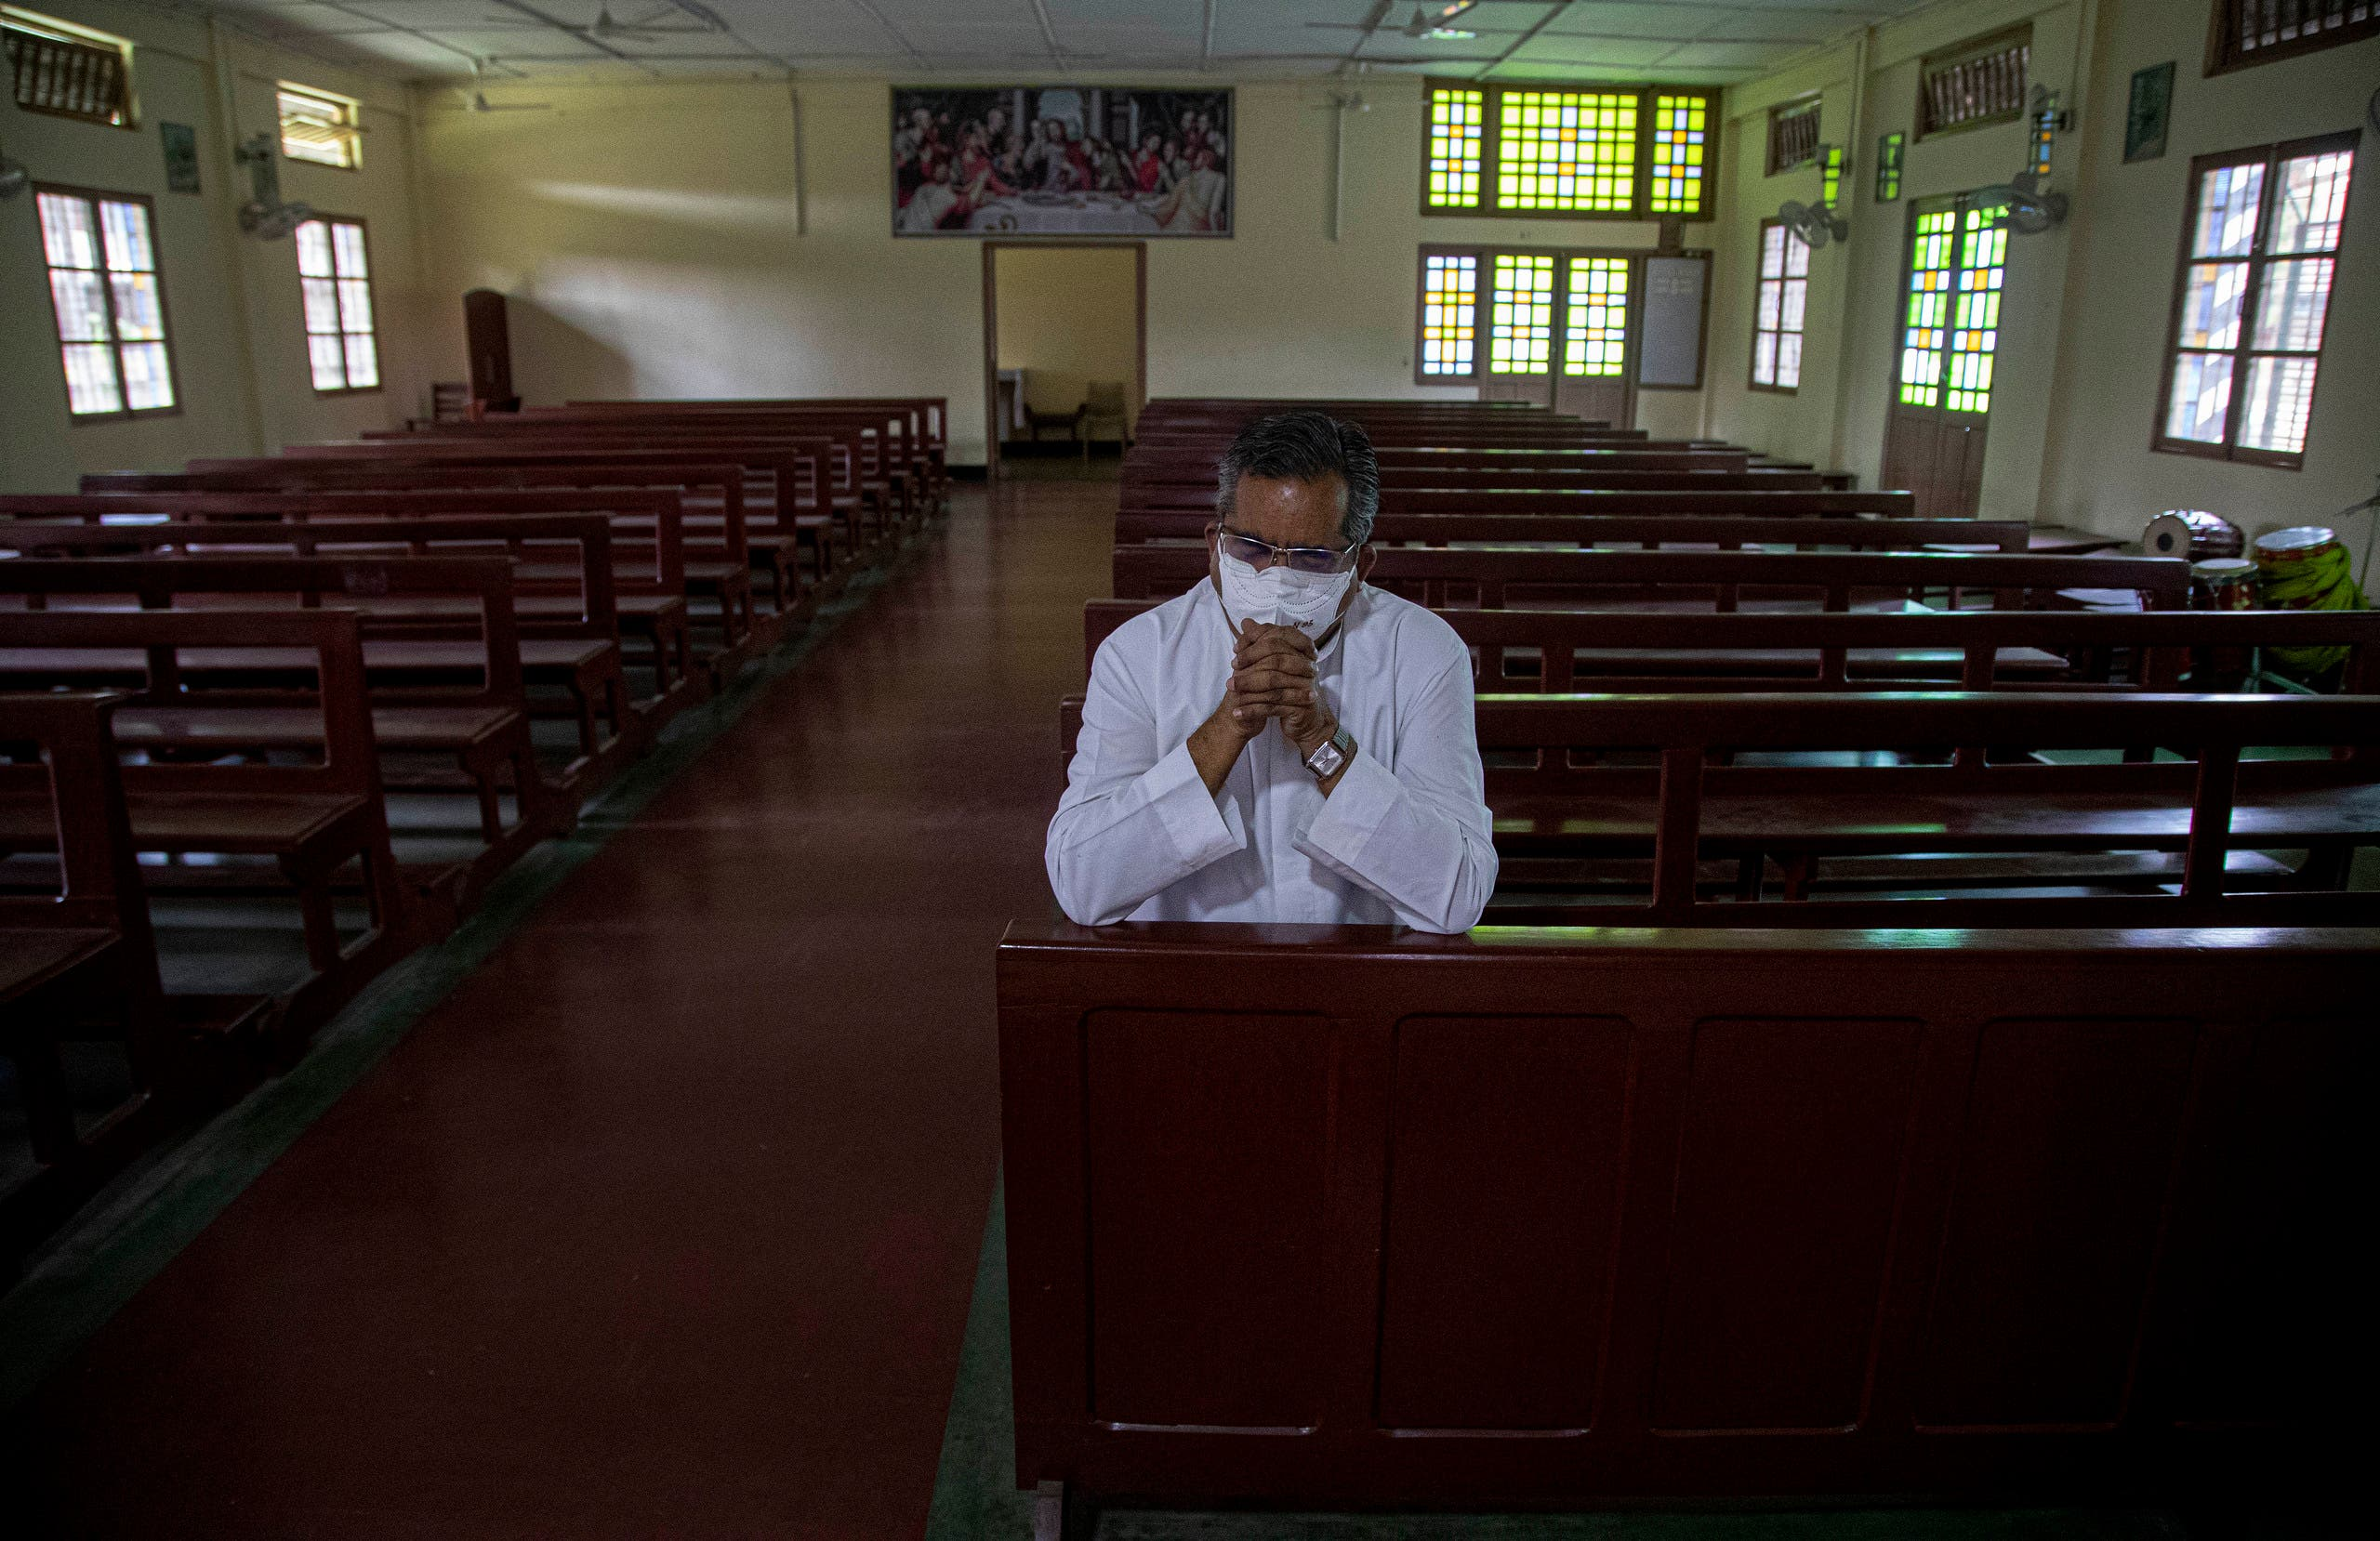 A Catholic priest V.M. Thomas prays in a church on Good Friday in Gauhati, India, Friday, April 10, 2020. (AP)